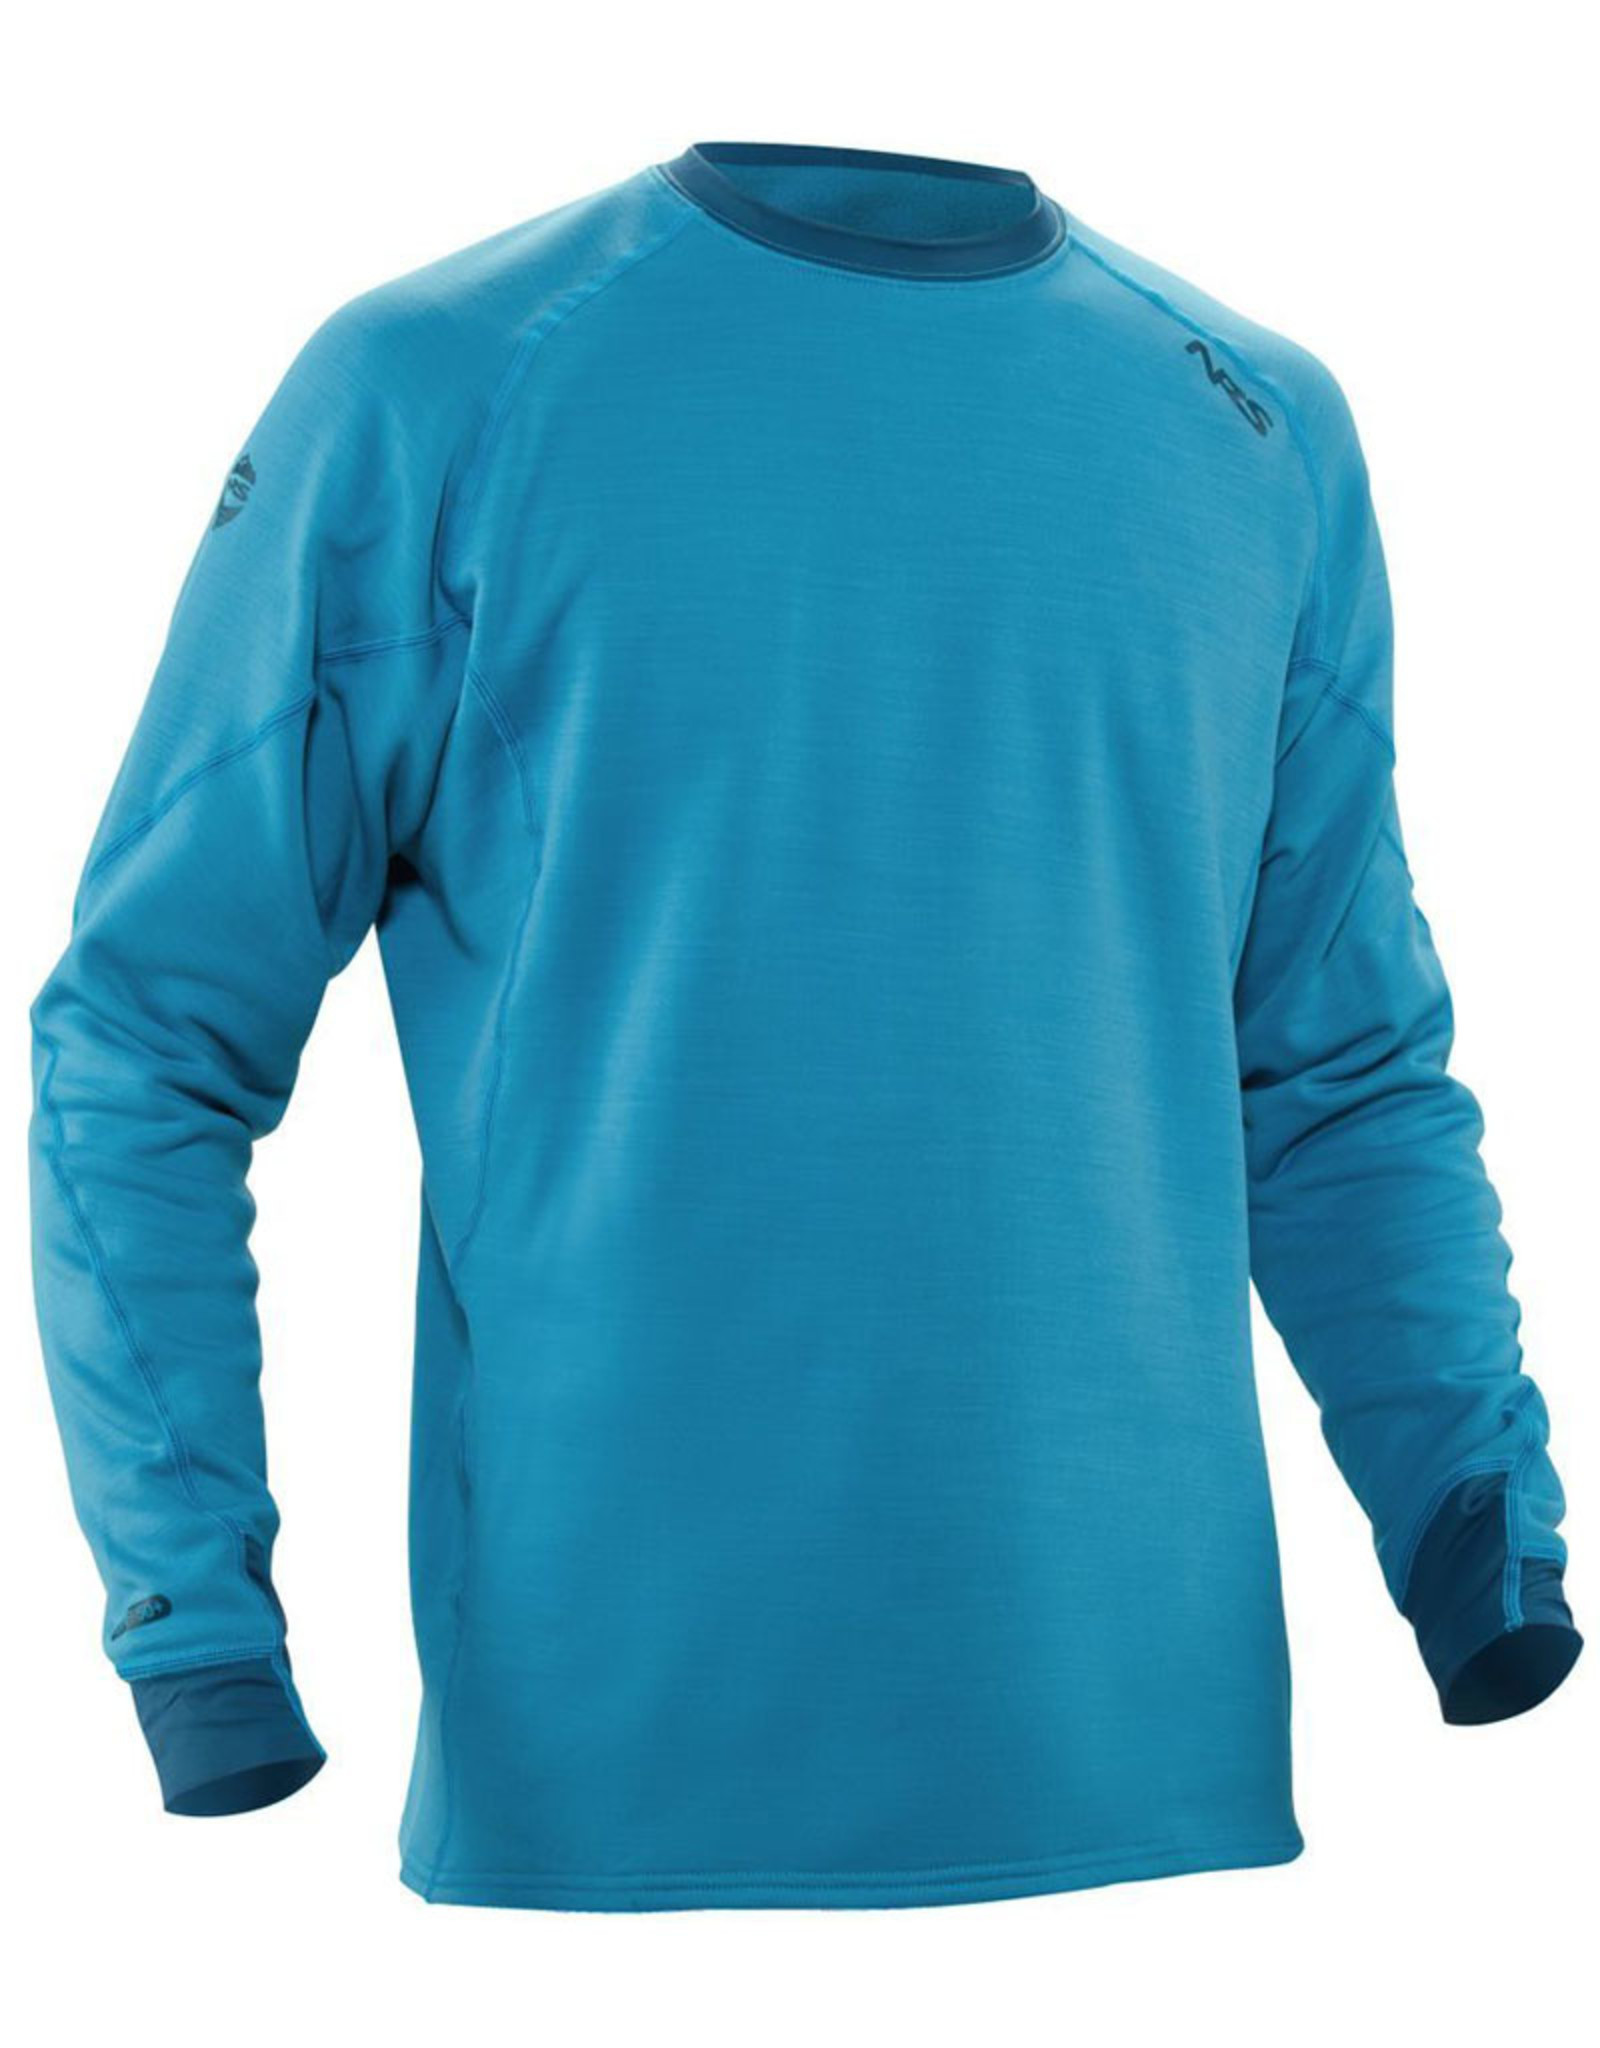 NRS NRS H2Core Expedition L/S Shirt - Men